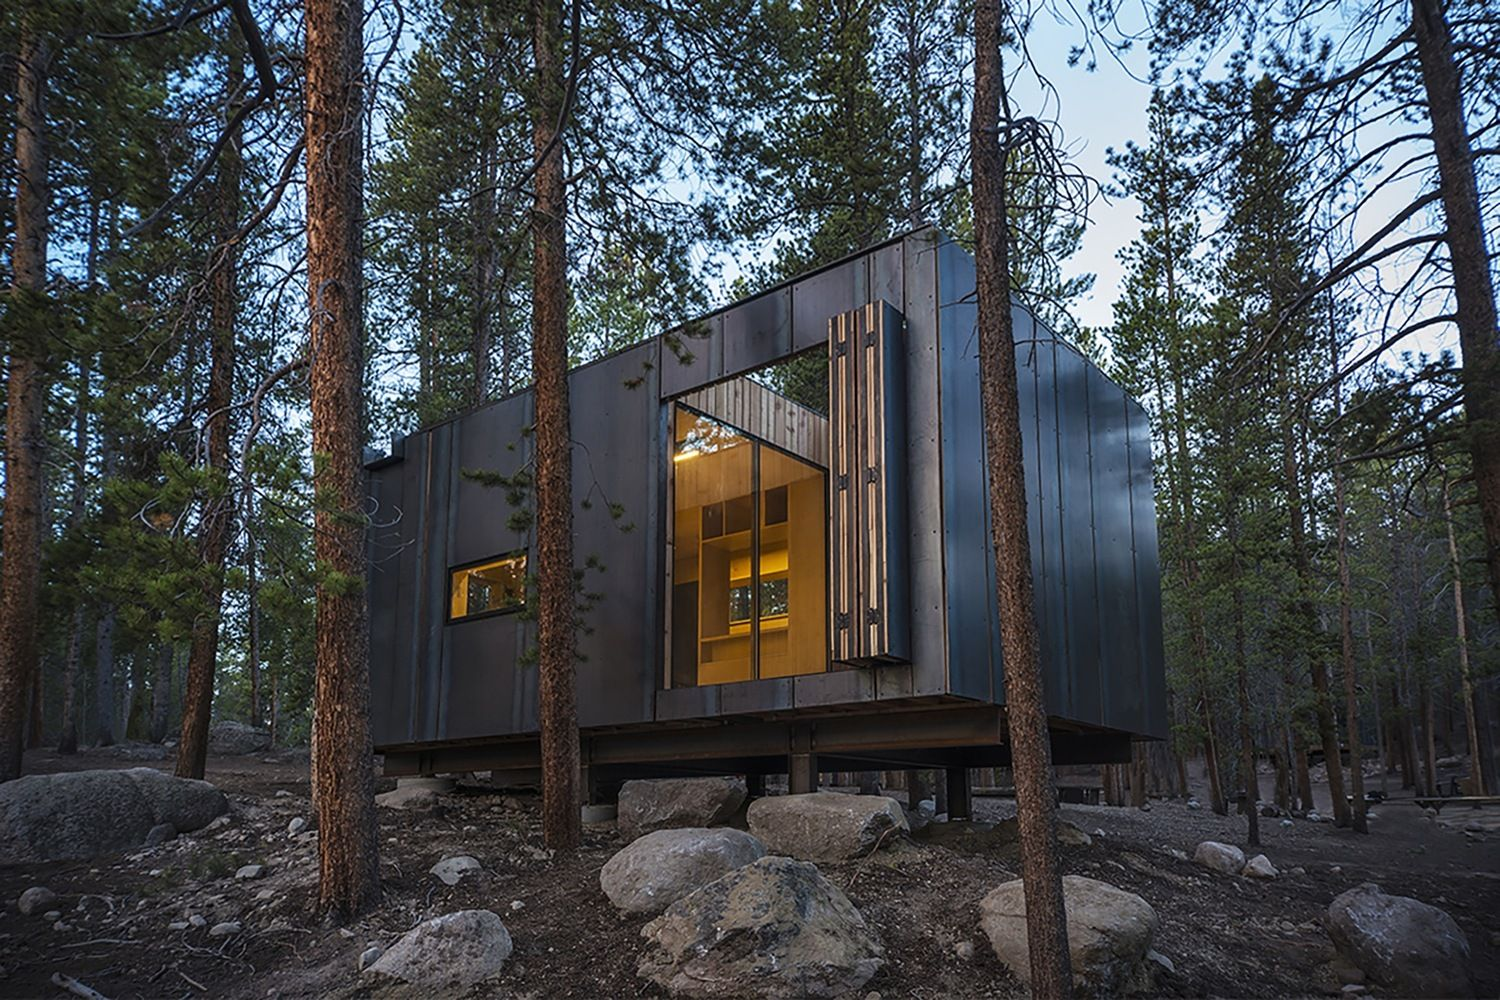 trapper denver rentals view s bedroom cabin lodging deck no from colorado of the other two resort like trappers in cabins mountain is accommodation meadow